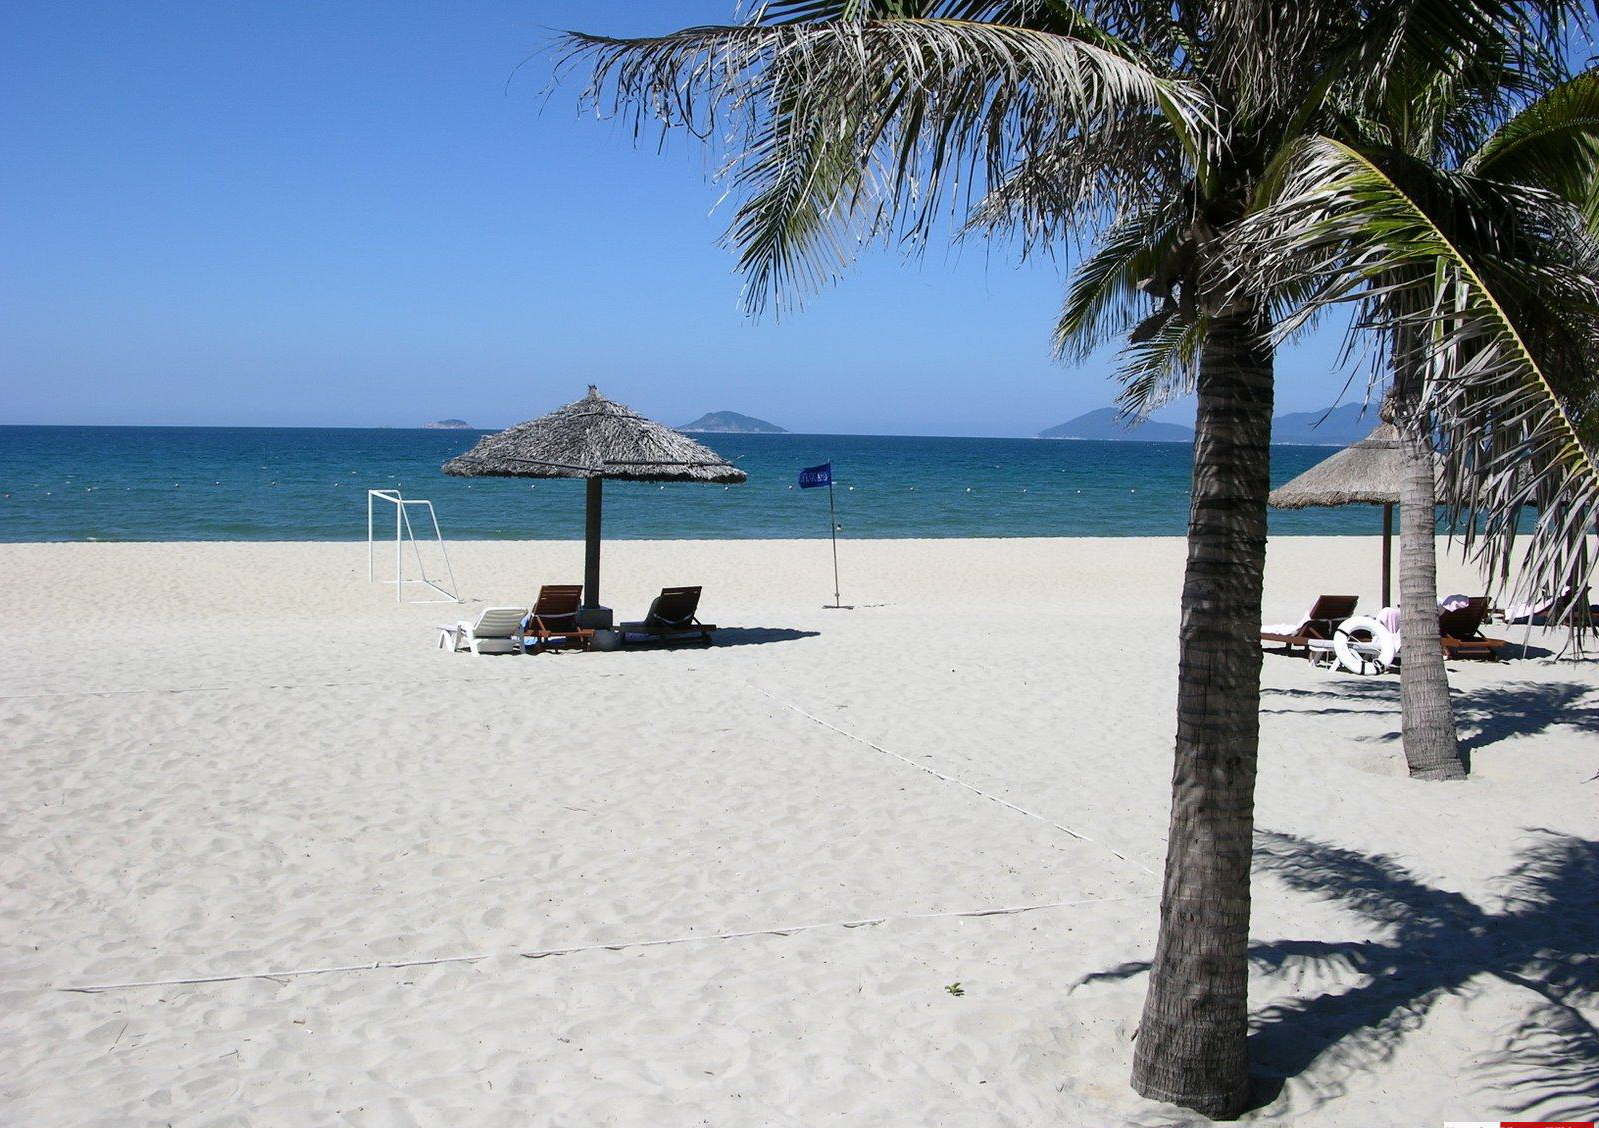 Cua Dai beach (Hoi An City, Quang Nam Province, Middle of Vietnam) - Photo: Internet